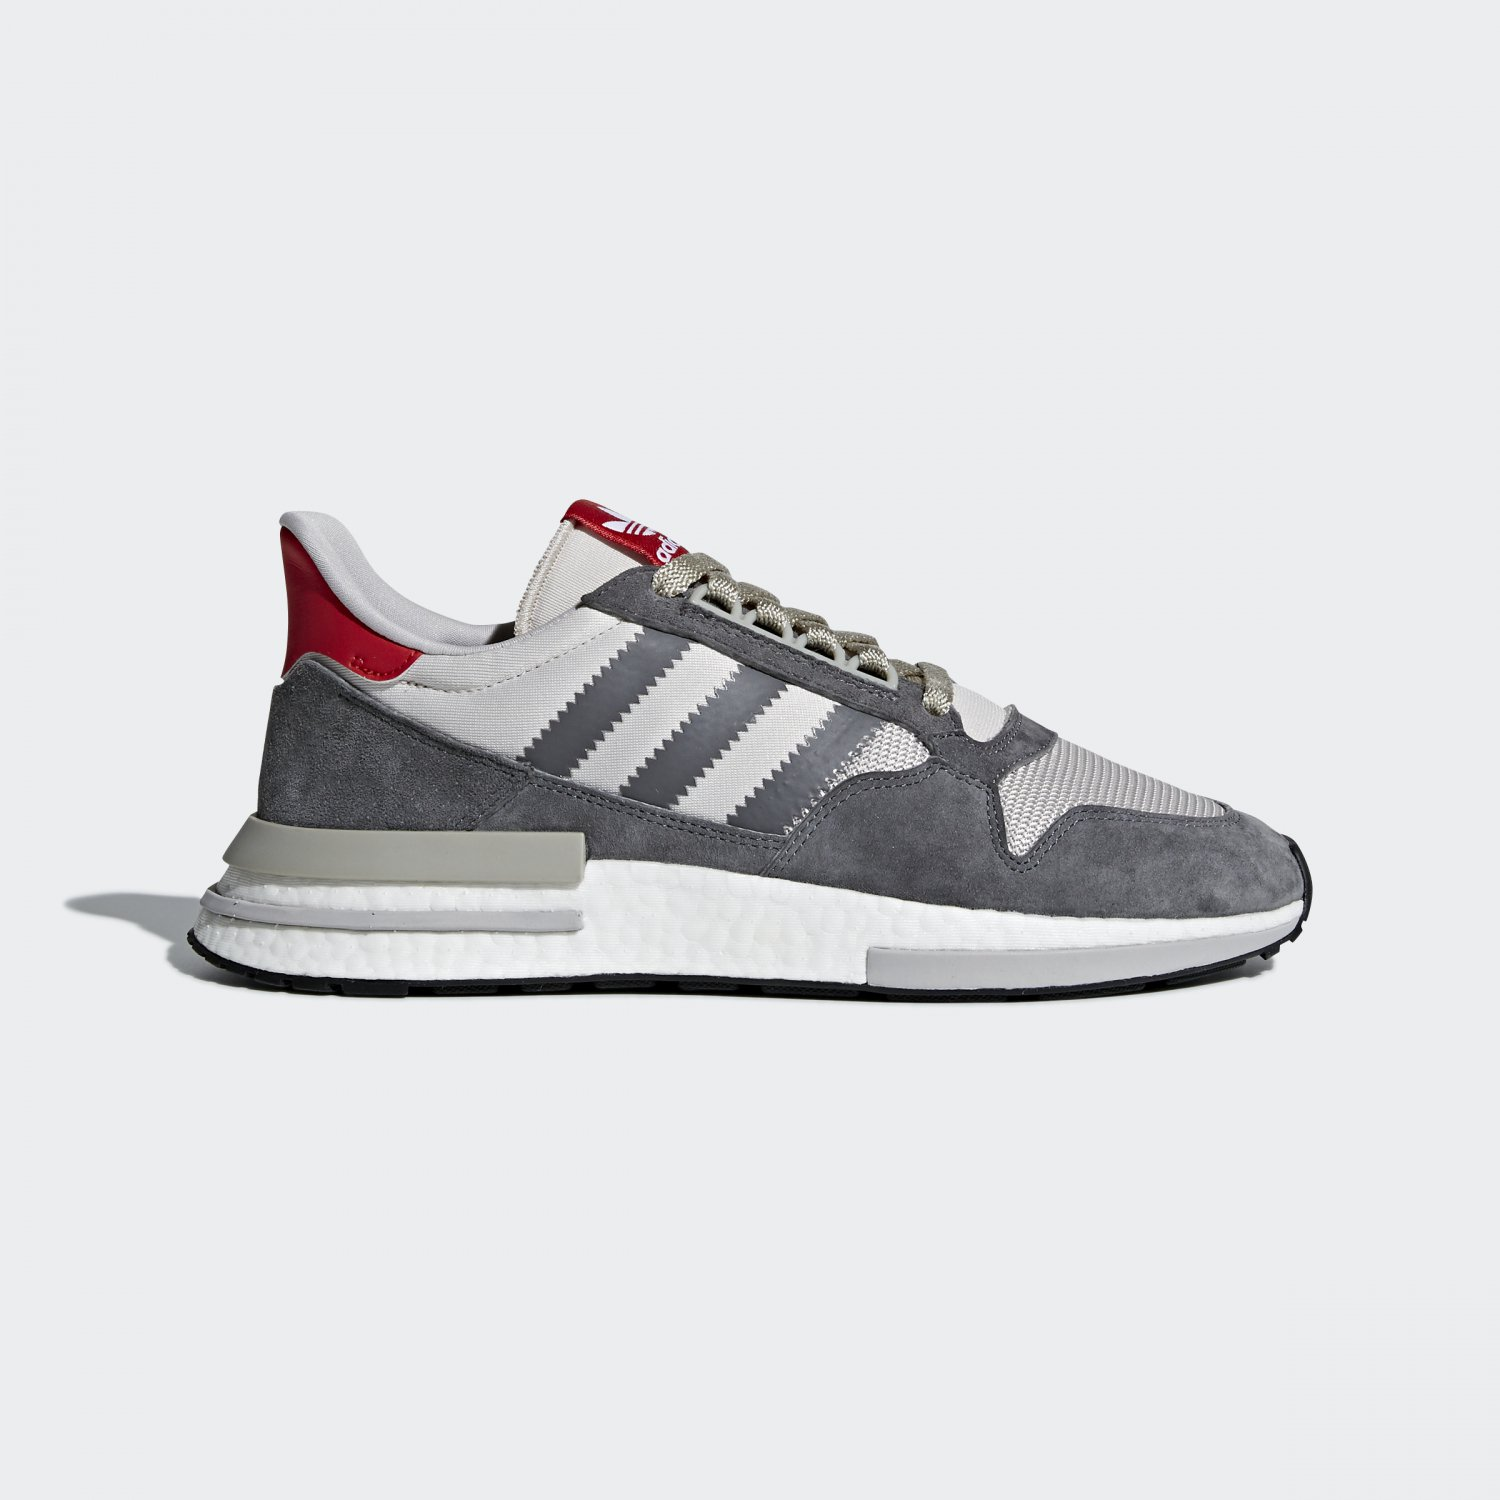 adidas-zx-500-rm-b42204-release-20180707